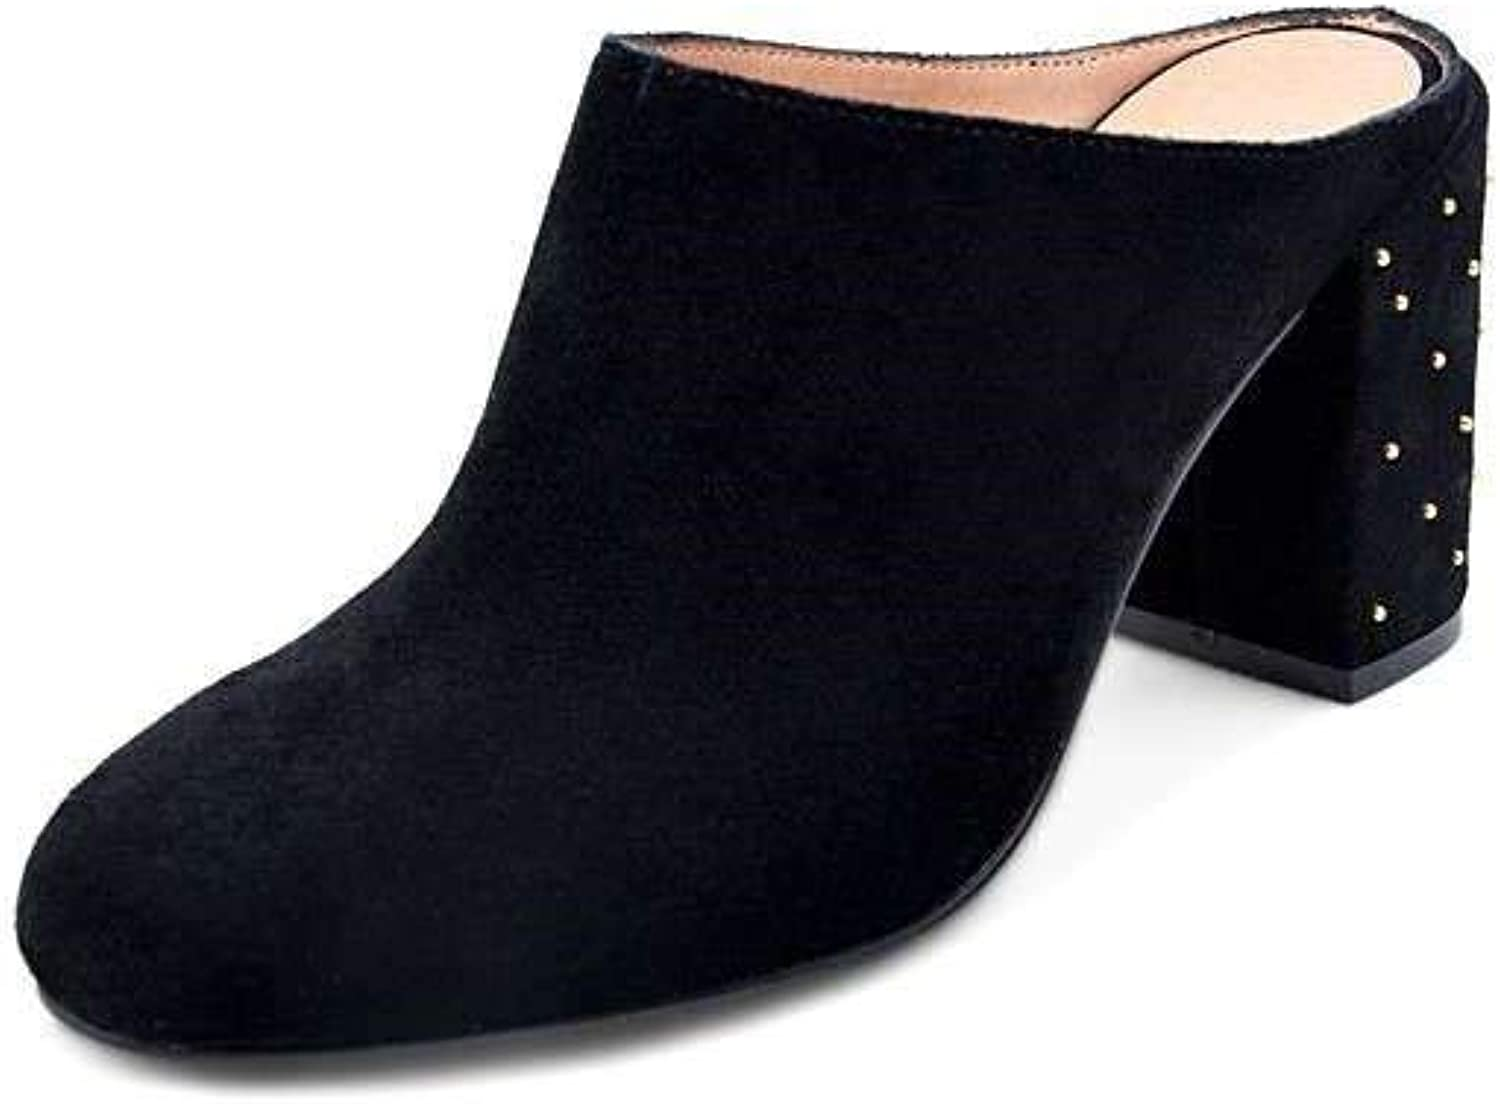 Bettye Muller Womens Stately Leather Round Toe Clogs